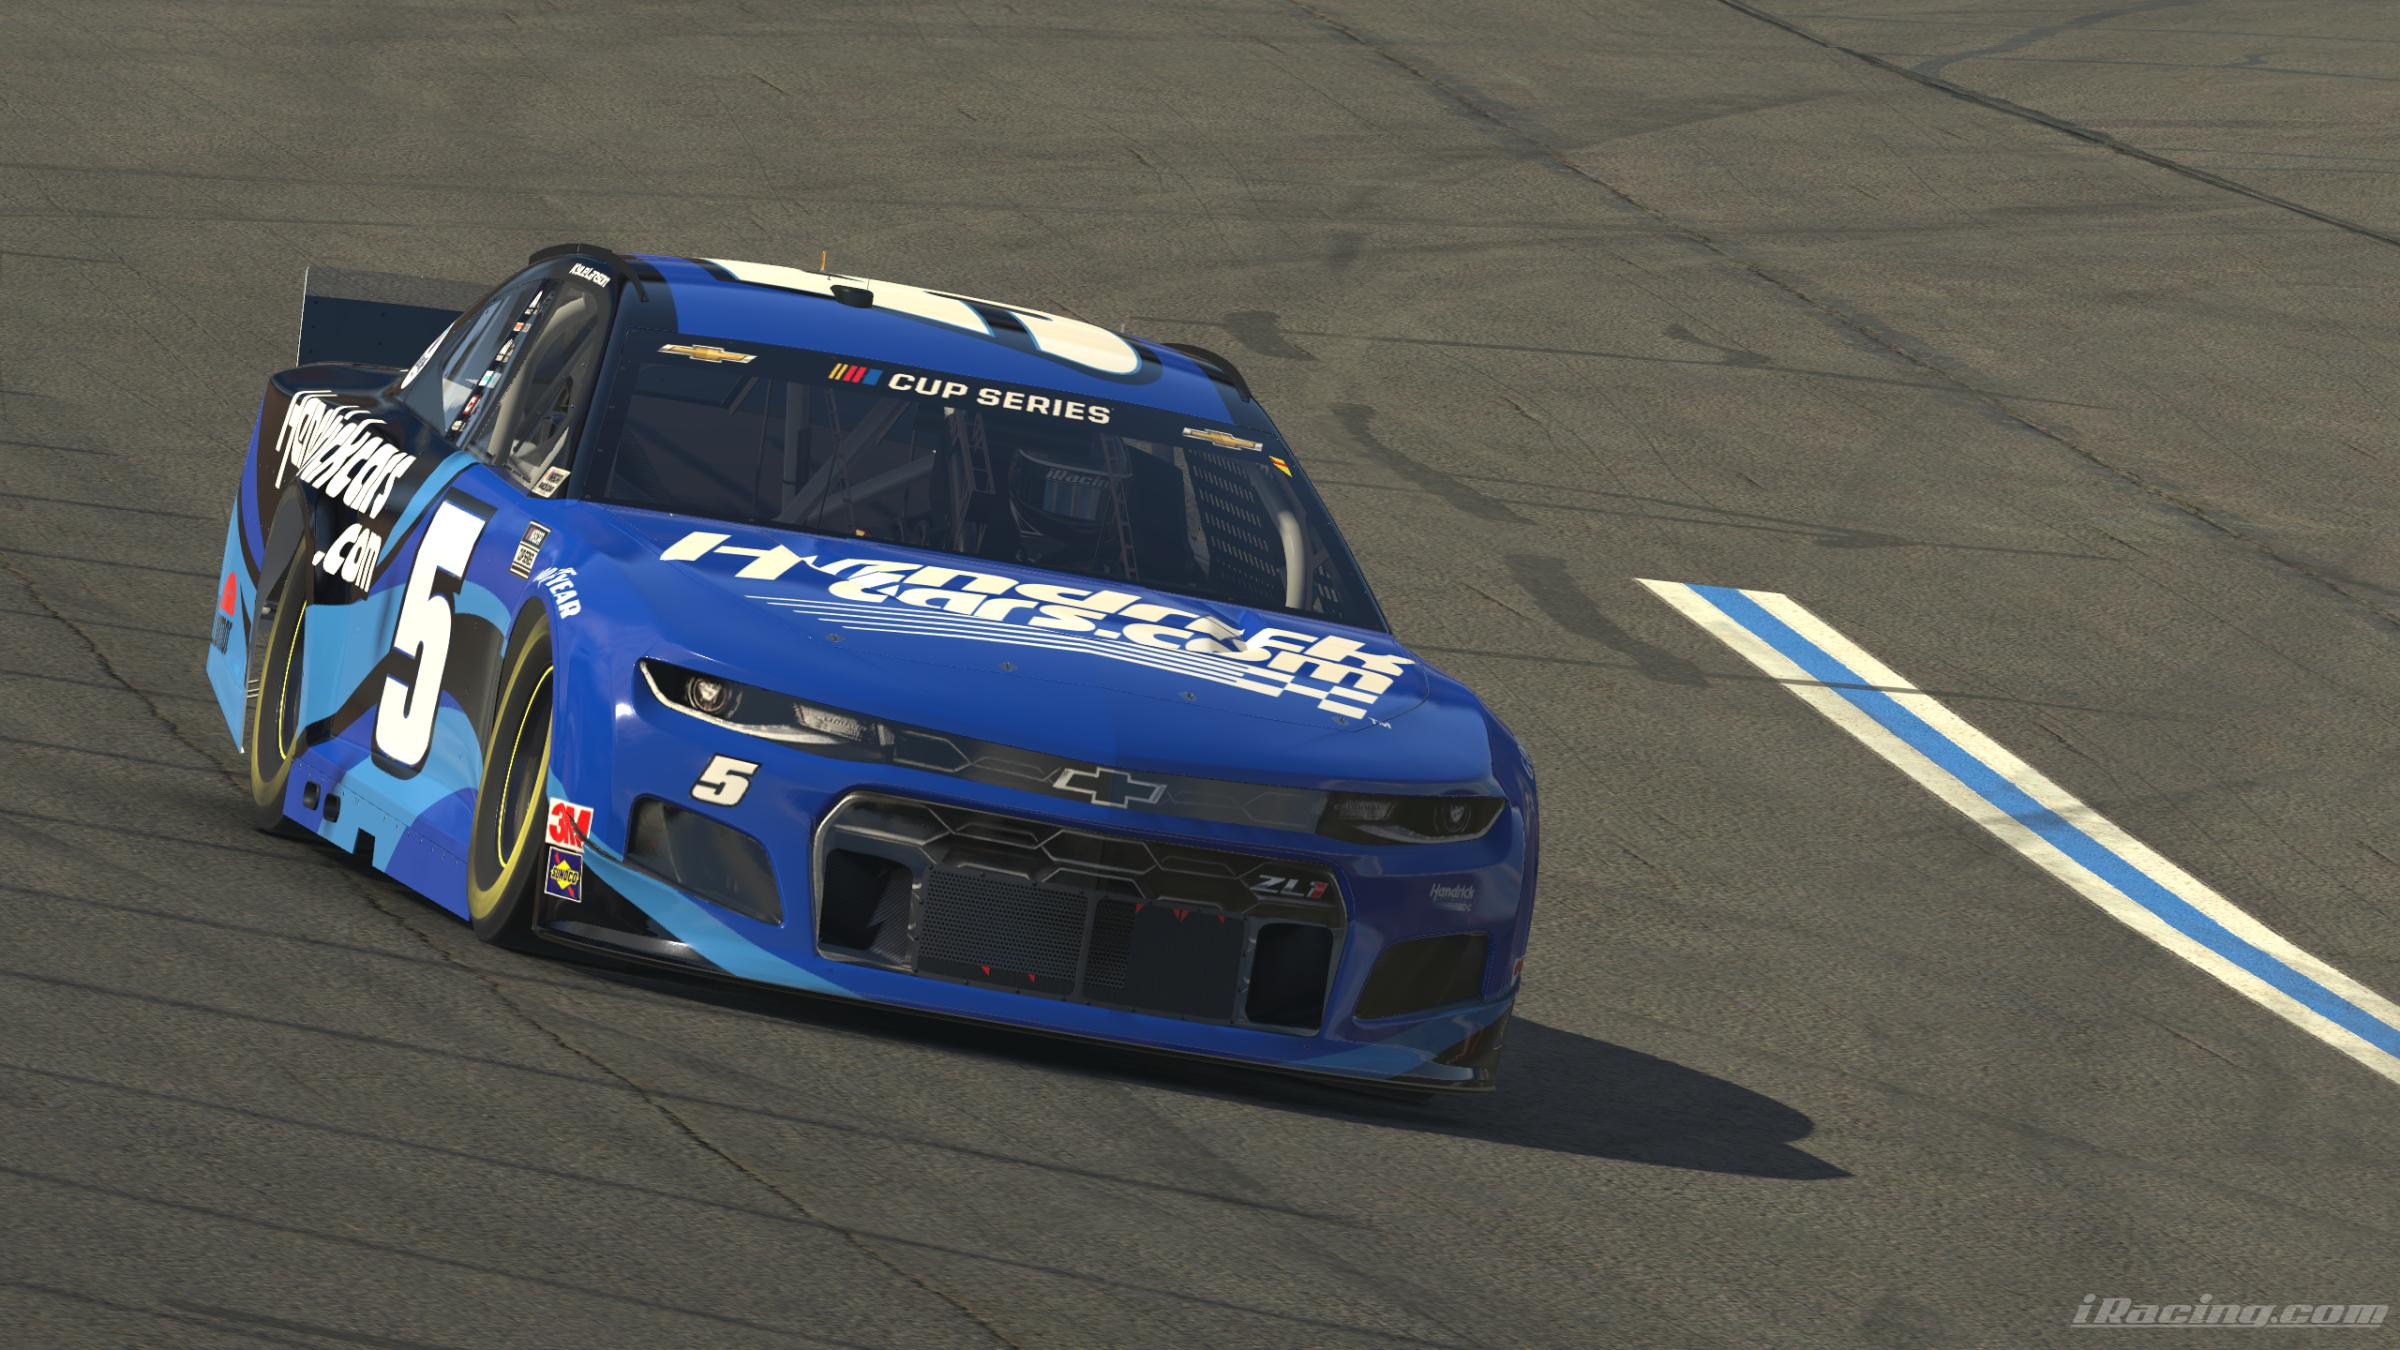 Preview of 2021 Fictional Kyle Larson HendrickCars.com (No Number) by Ryan Pistana